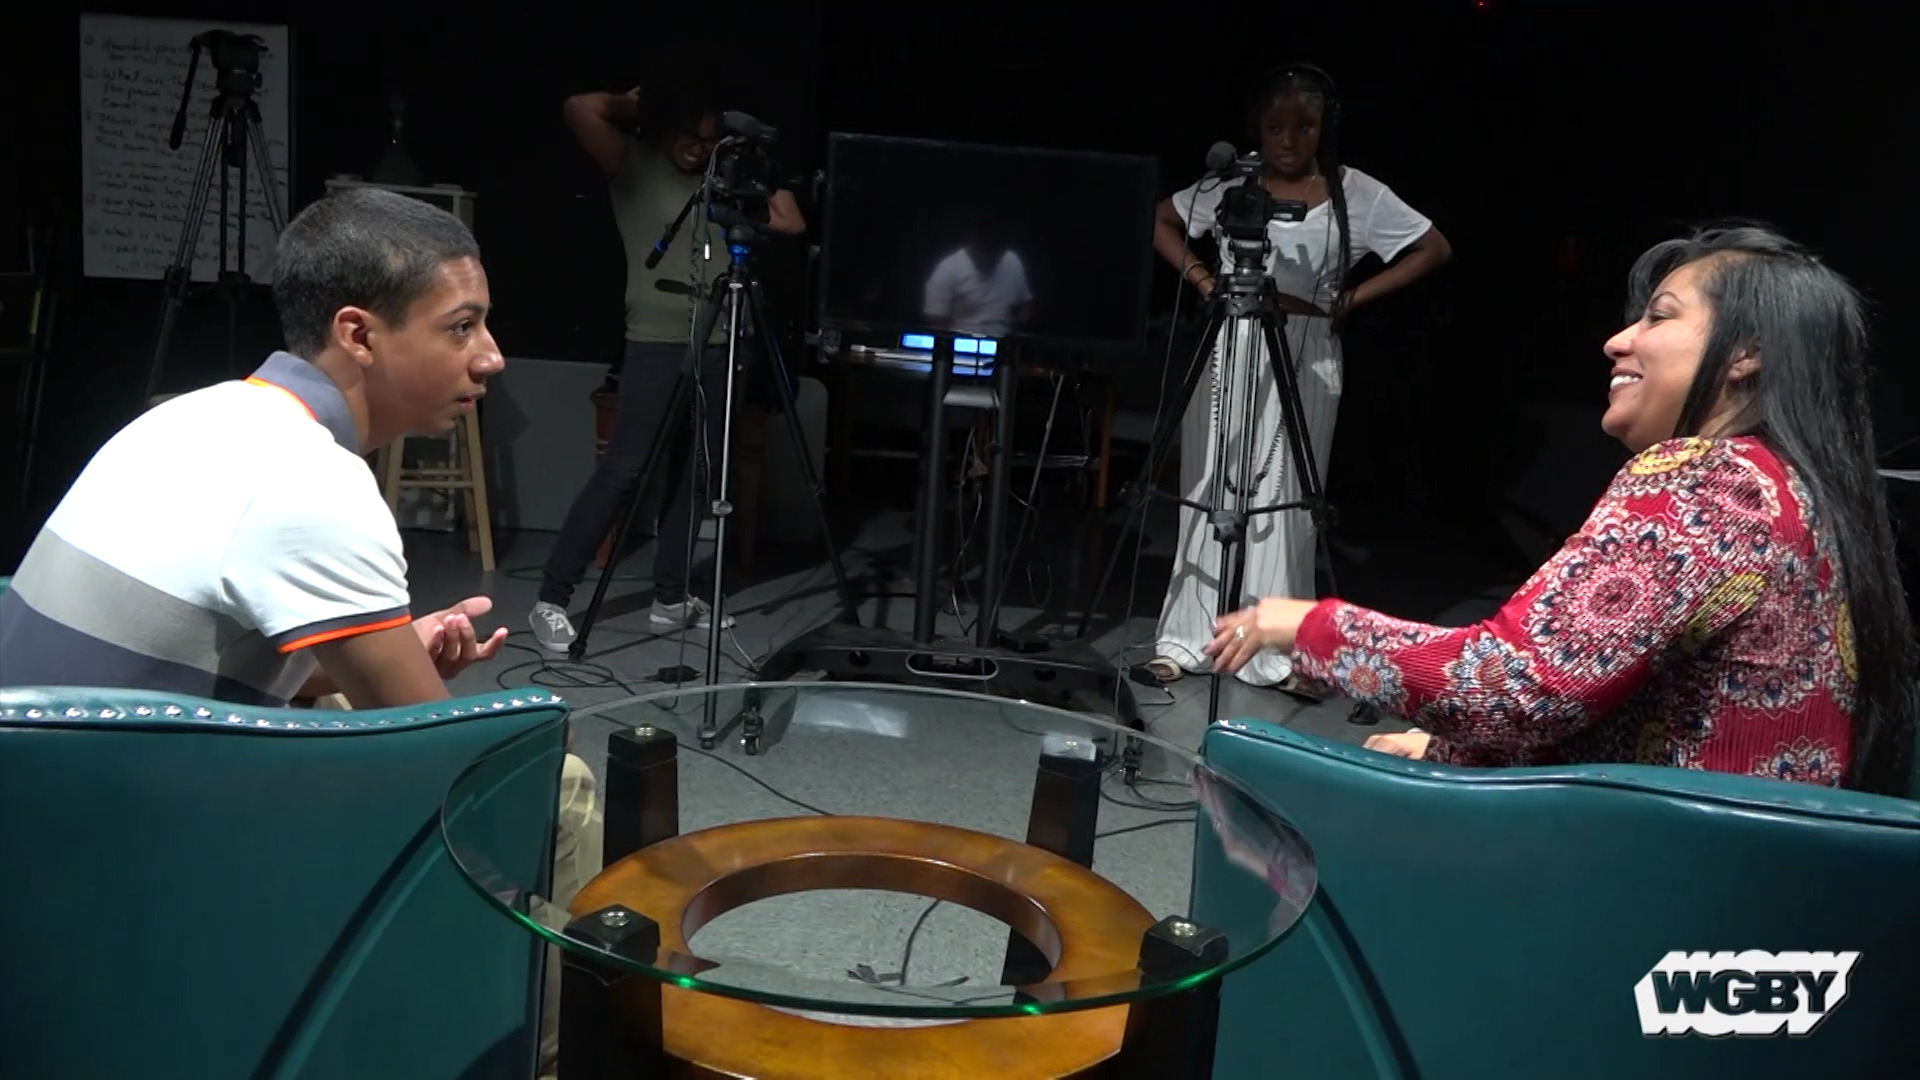 WGBY's Latino Youth Media Institute guided young people displaced by Hurricane Maria as they created stories reflecting their experience during the storm.